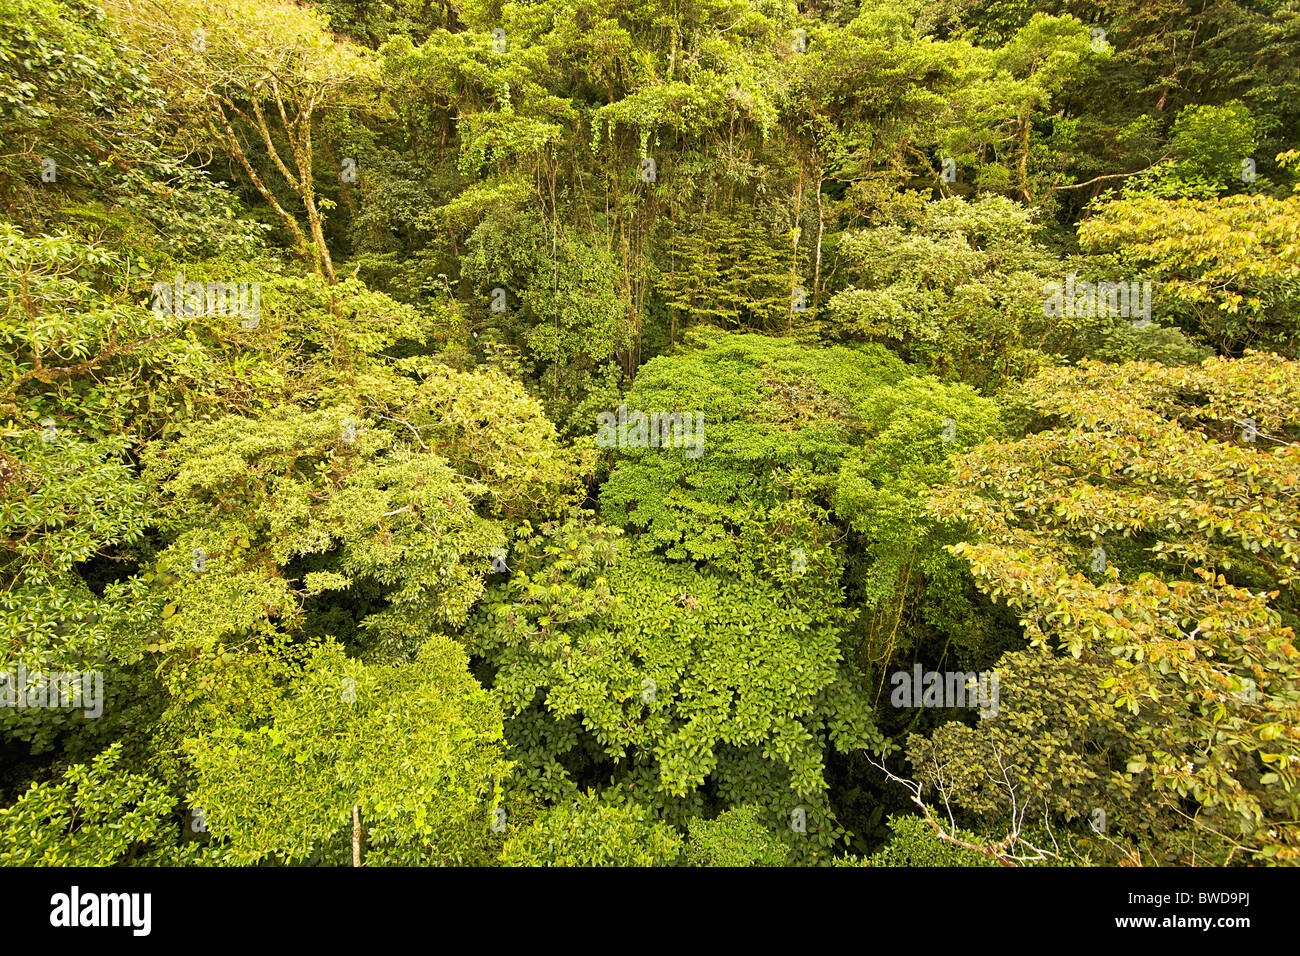 This is the endangered canopy of an original central american rain forest with very complex vegetation. - Stock Image